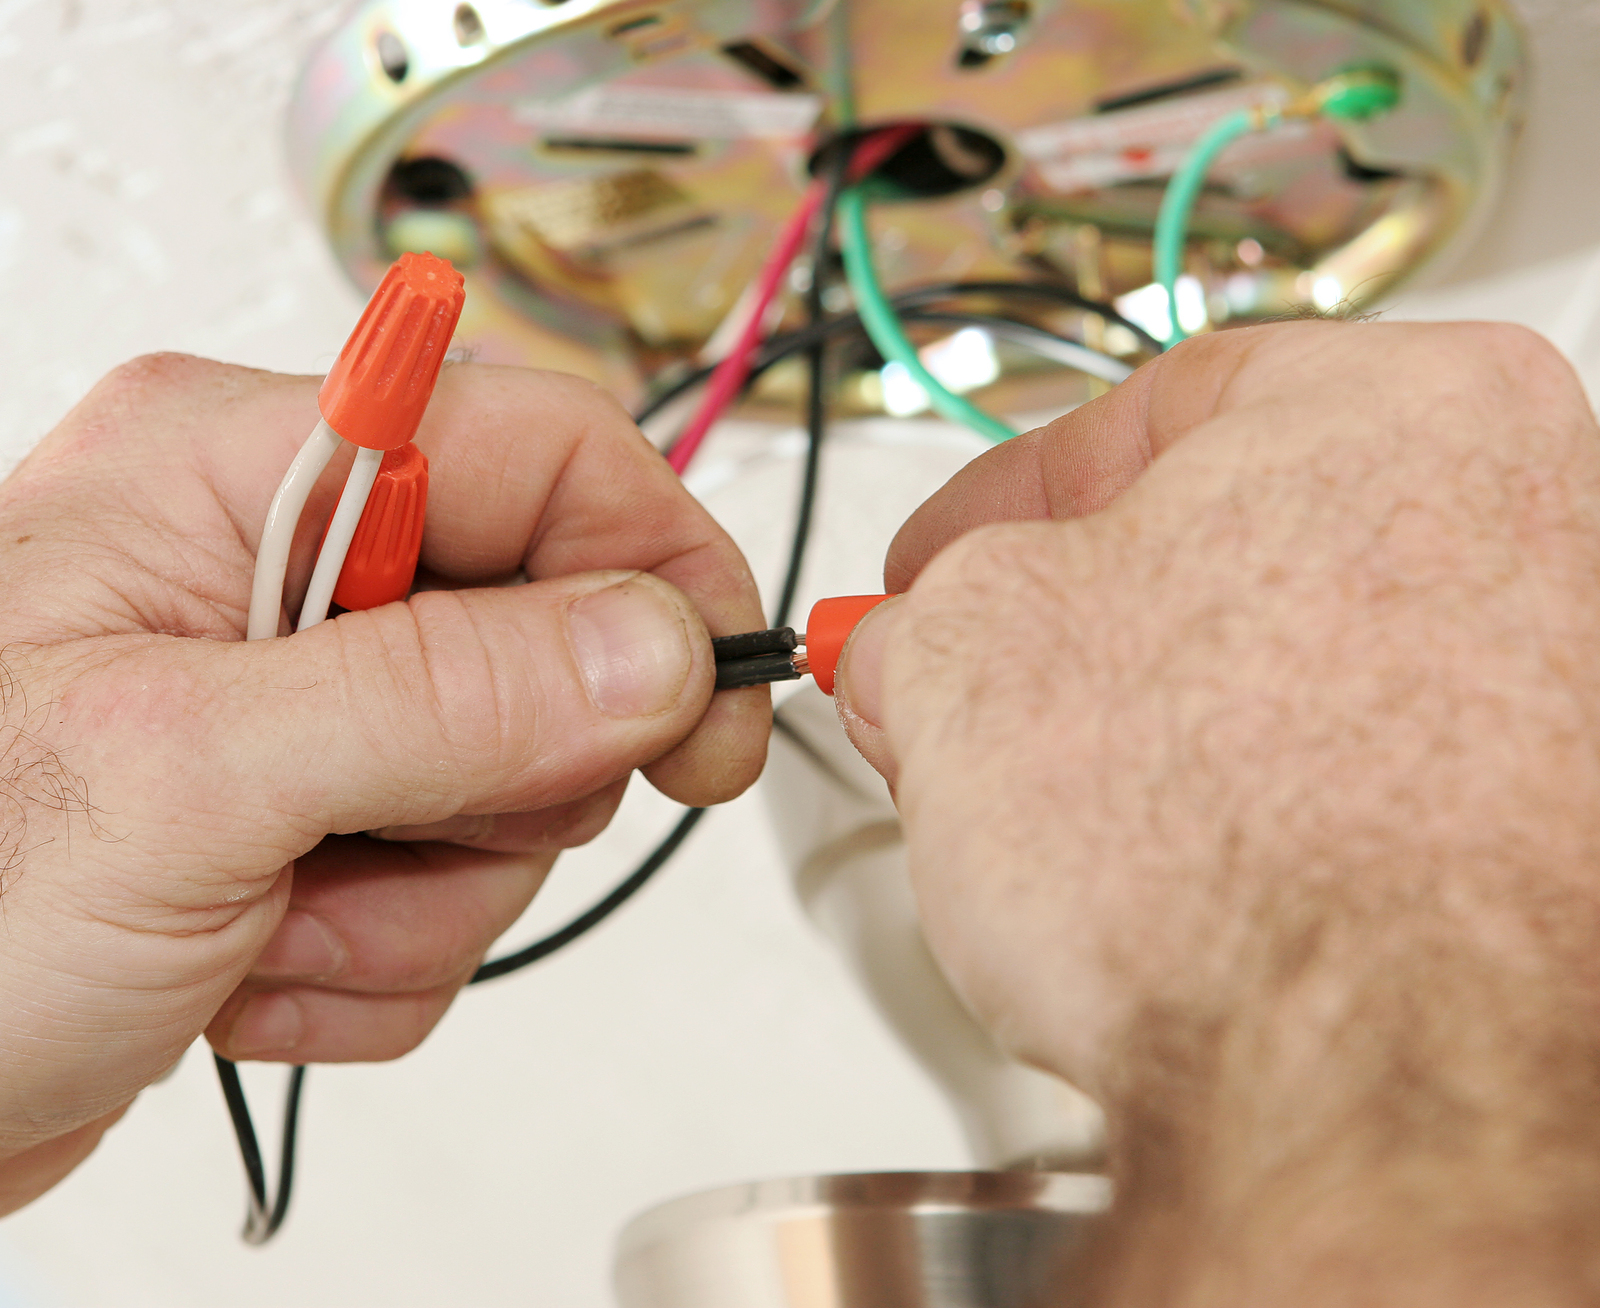 bigstock-Electrician-Connecting-Wires-845801.jpg